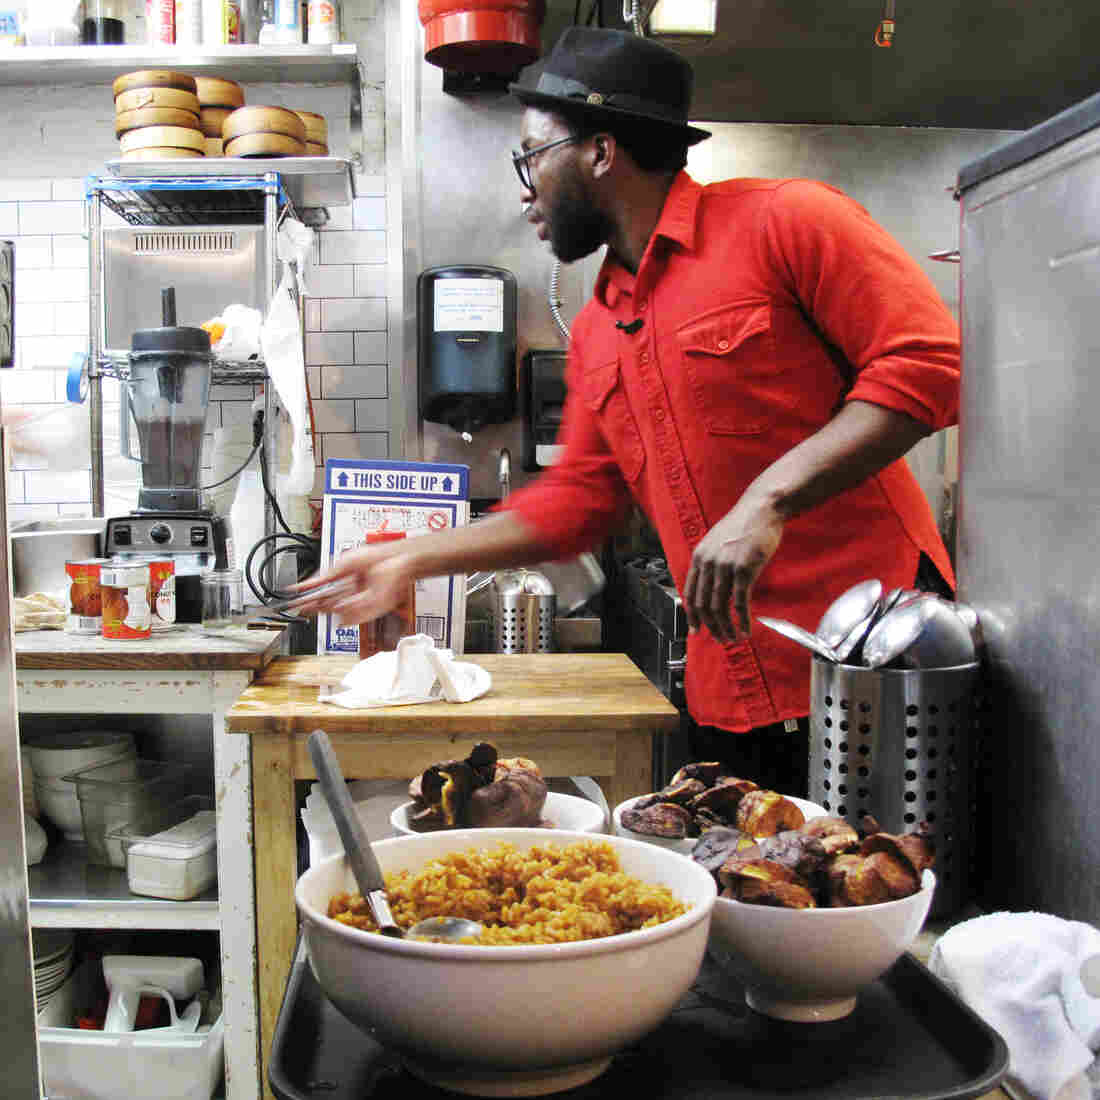 Chasing Food Dreams Across U.S., Nigerian Chef Tests Immigration System